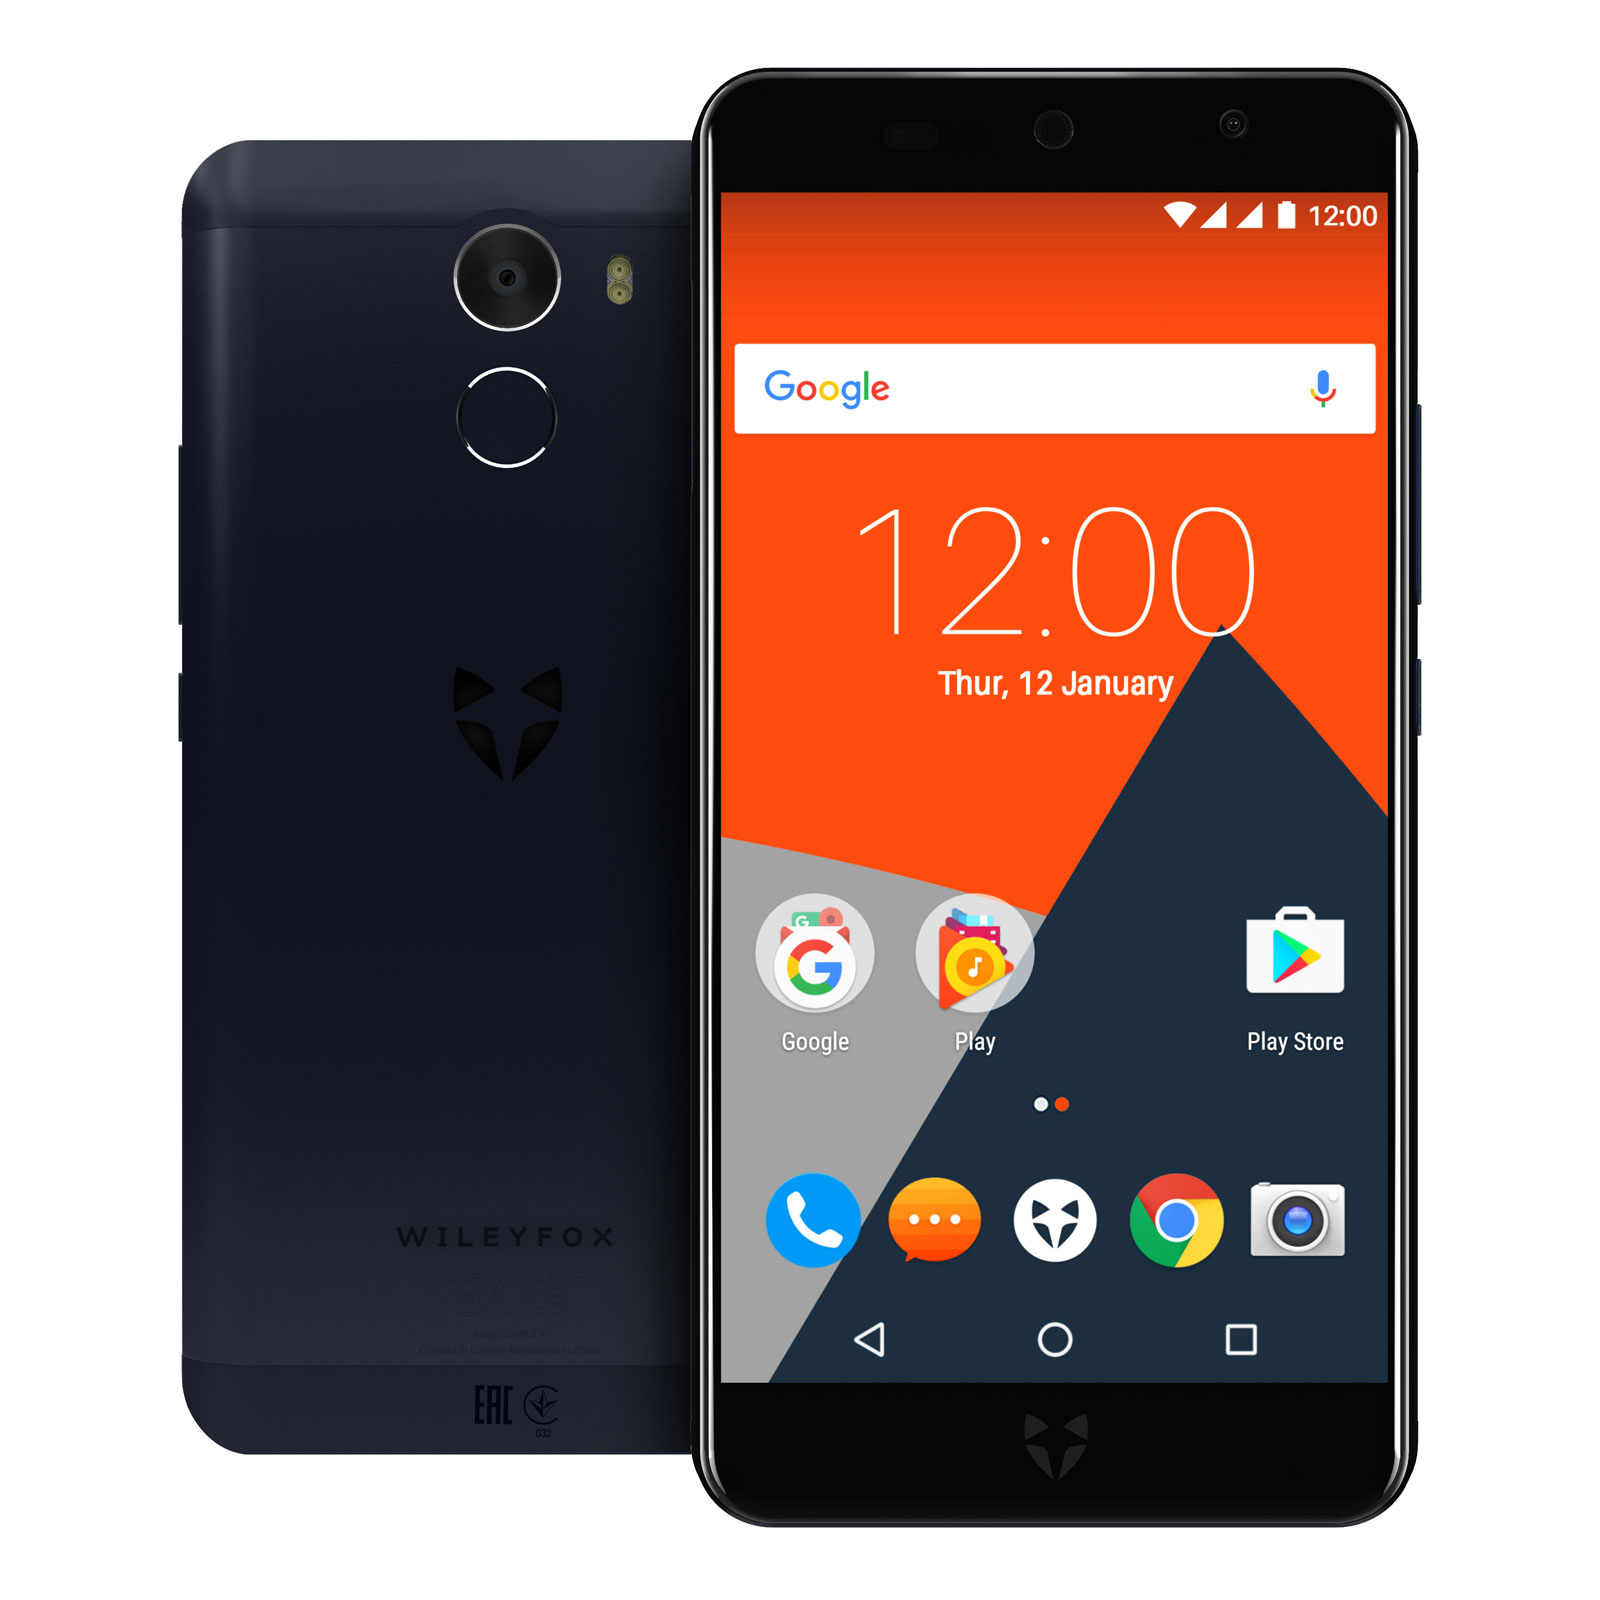 "Mobile & smartphone Wileyfox Swift 2 X Bleu Nuit Smartphone 4G-LTE Dual SIM - Snapdragon 430 8-Core 1.4 GHz - RAM 3 Go - Ecran tactile 5.2"" 1080 x 1920 - 32 Go - NFC/Bluetooth 4.1 - 3010 mAh - Android 7.1"